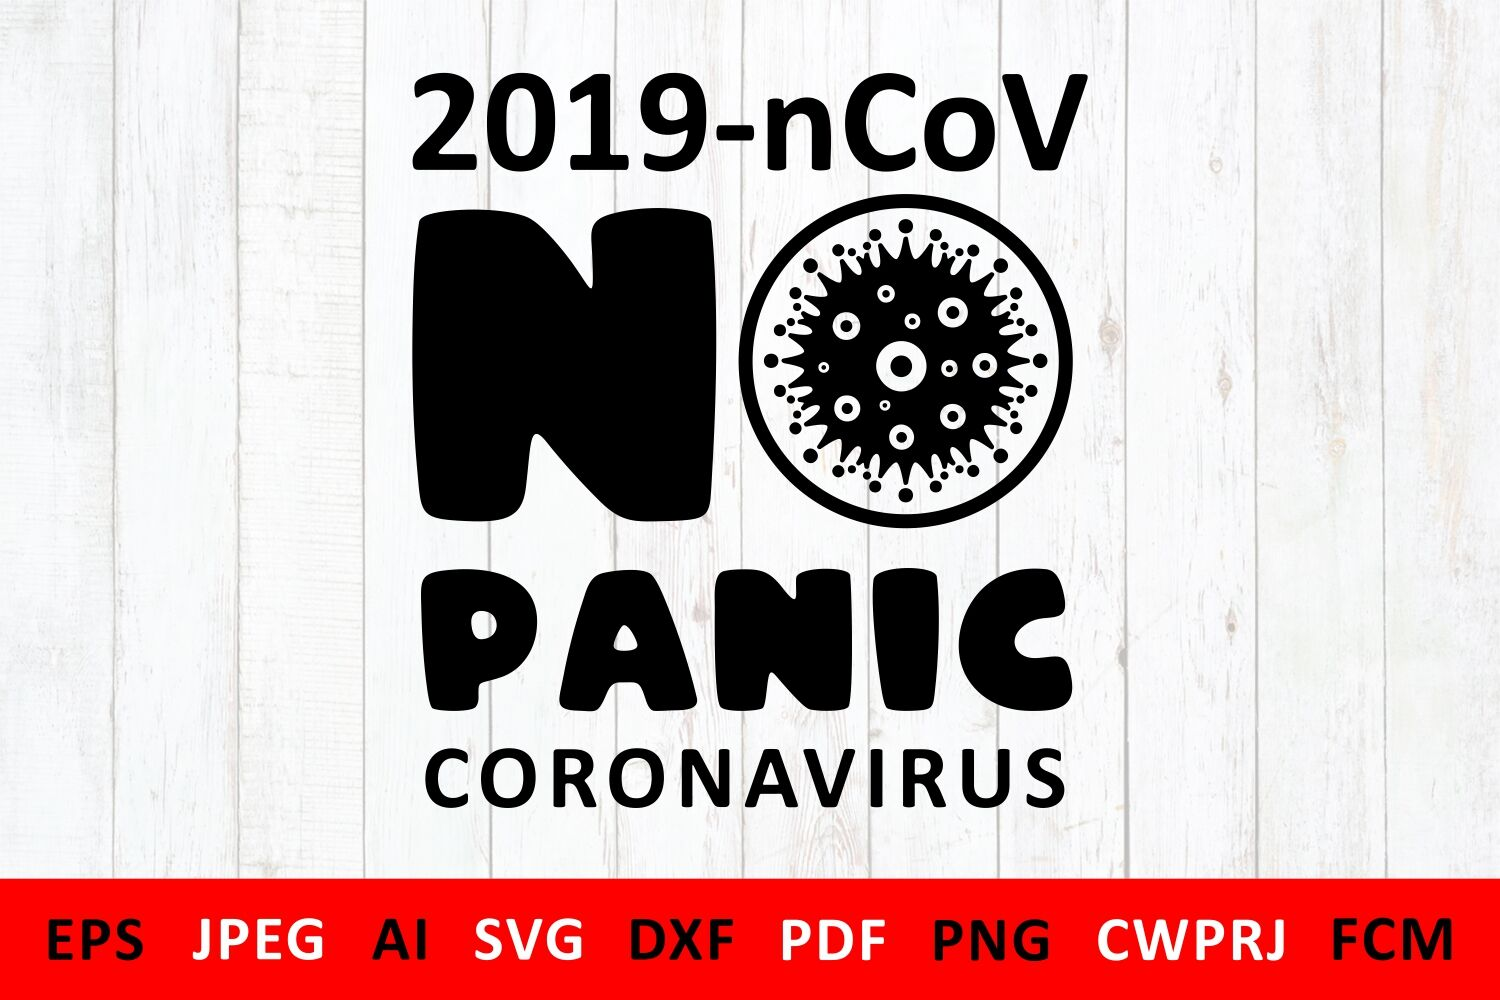 Svg Covid 19 Coronavirus 2019 Ncov For Diy Mask For Volunteers By